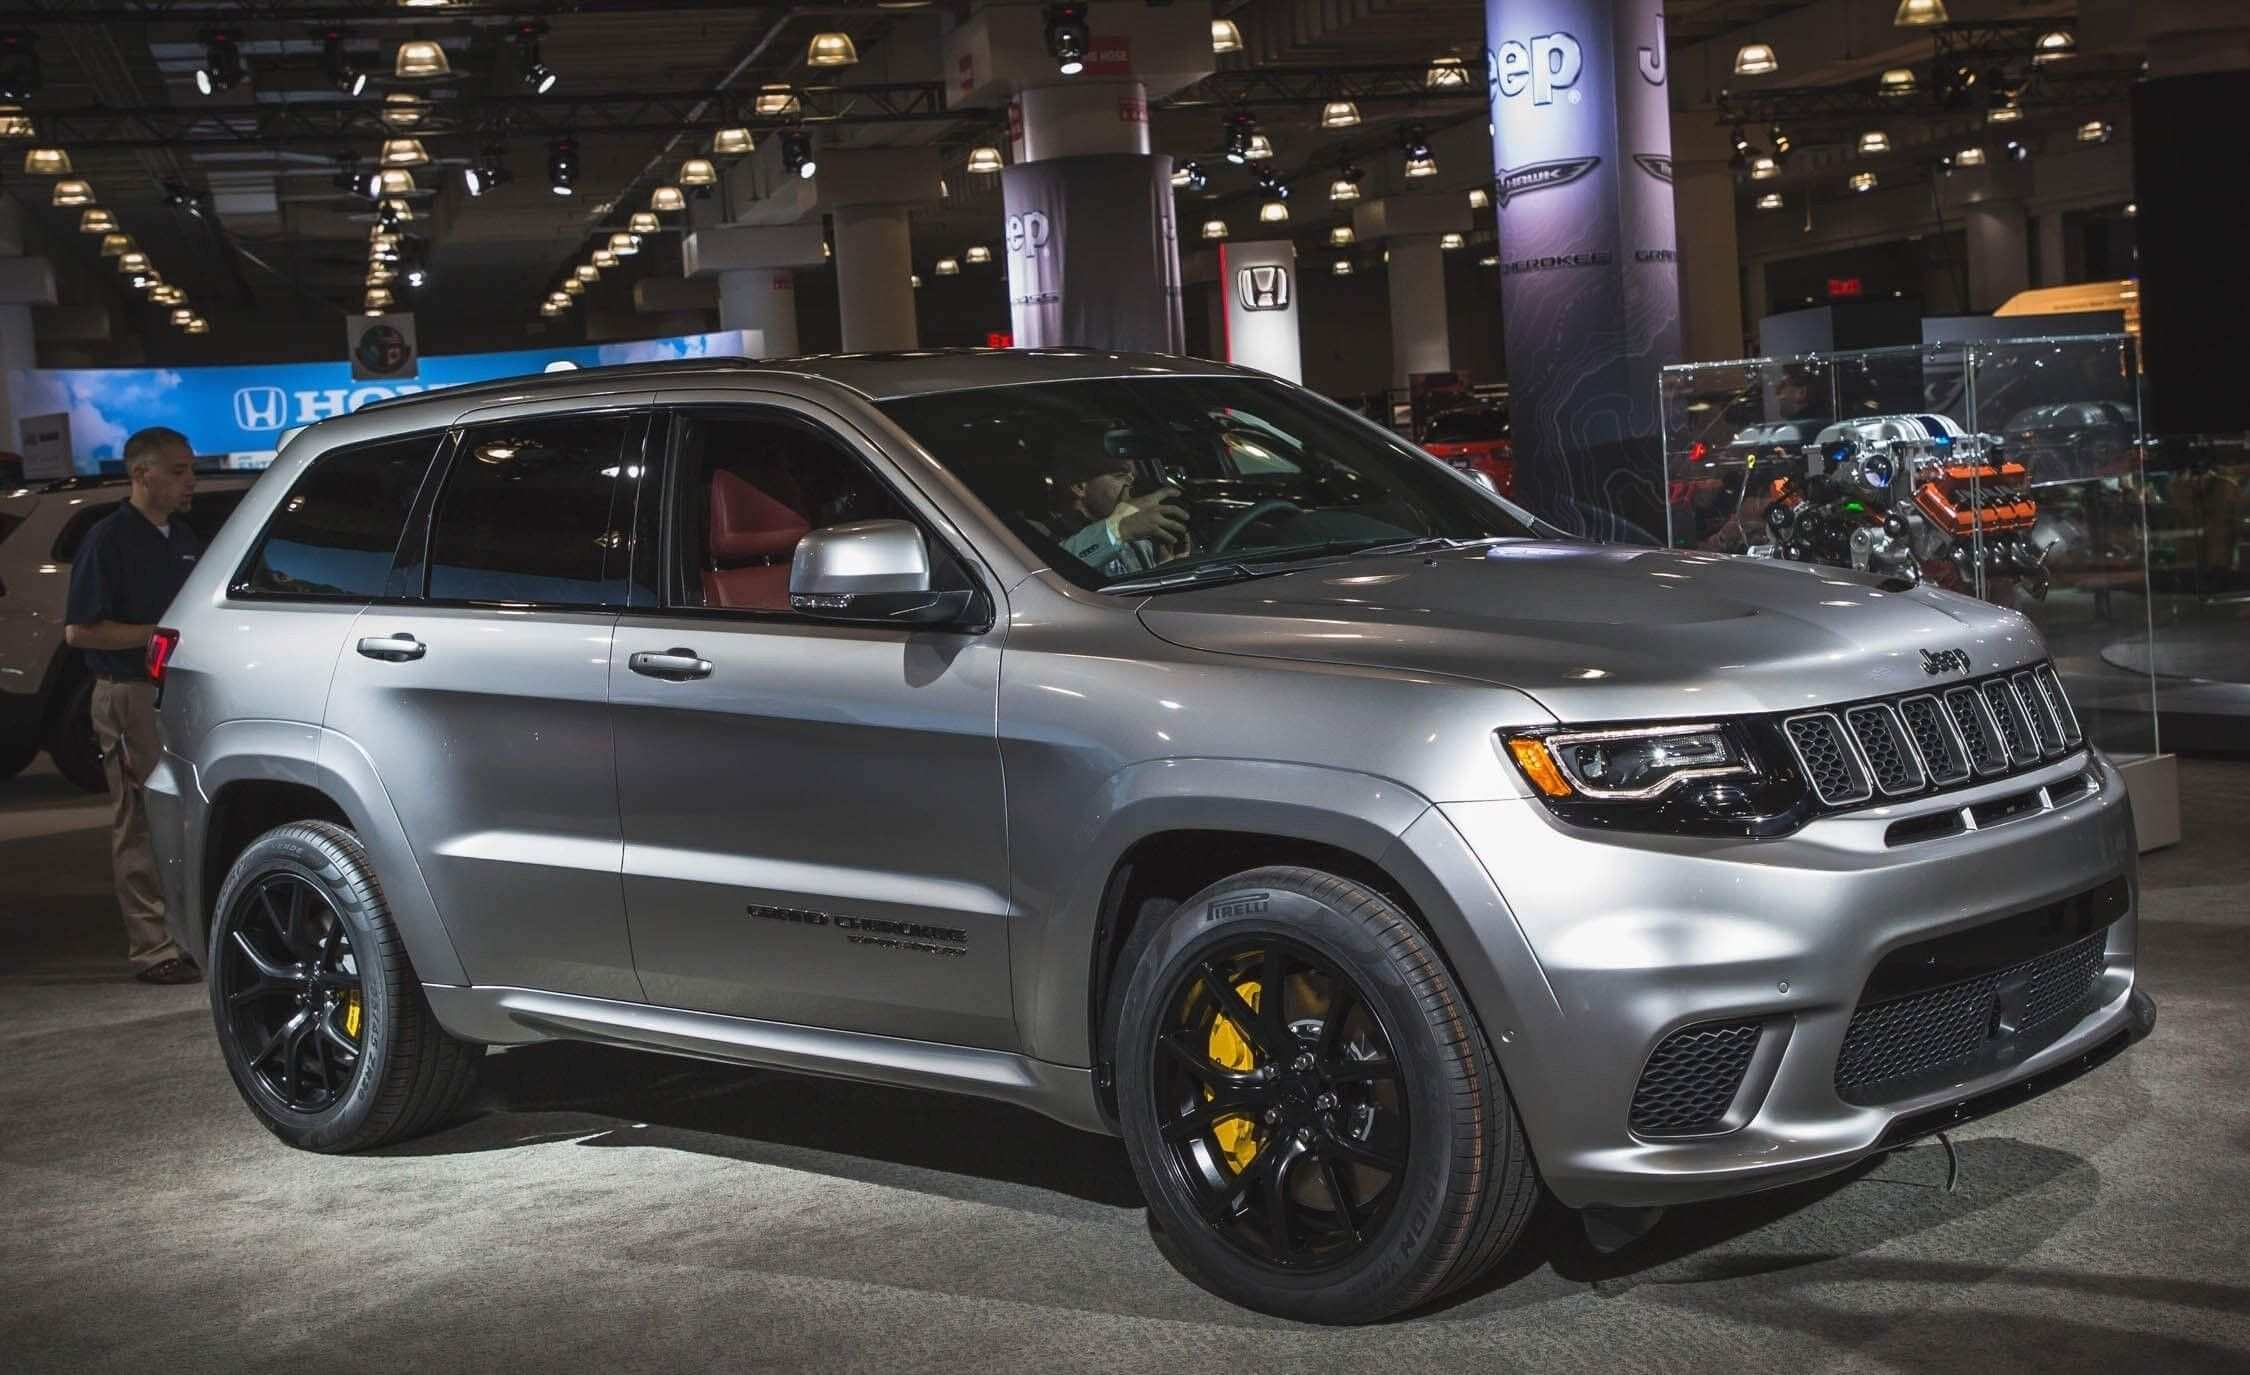 39 Concept of The Grand Cherokee Jeep 2019 Exterior And Interior Review Rumors by The Grand Cherokee Jeep 2019 Exterior And Interior Review